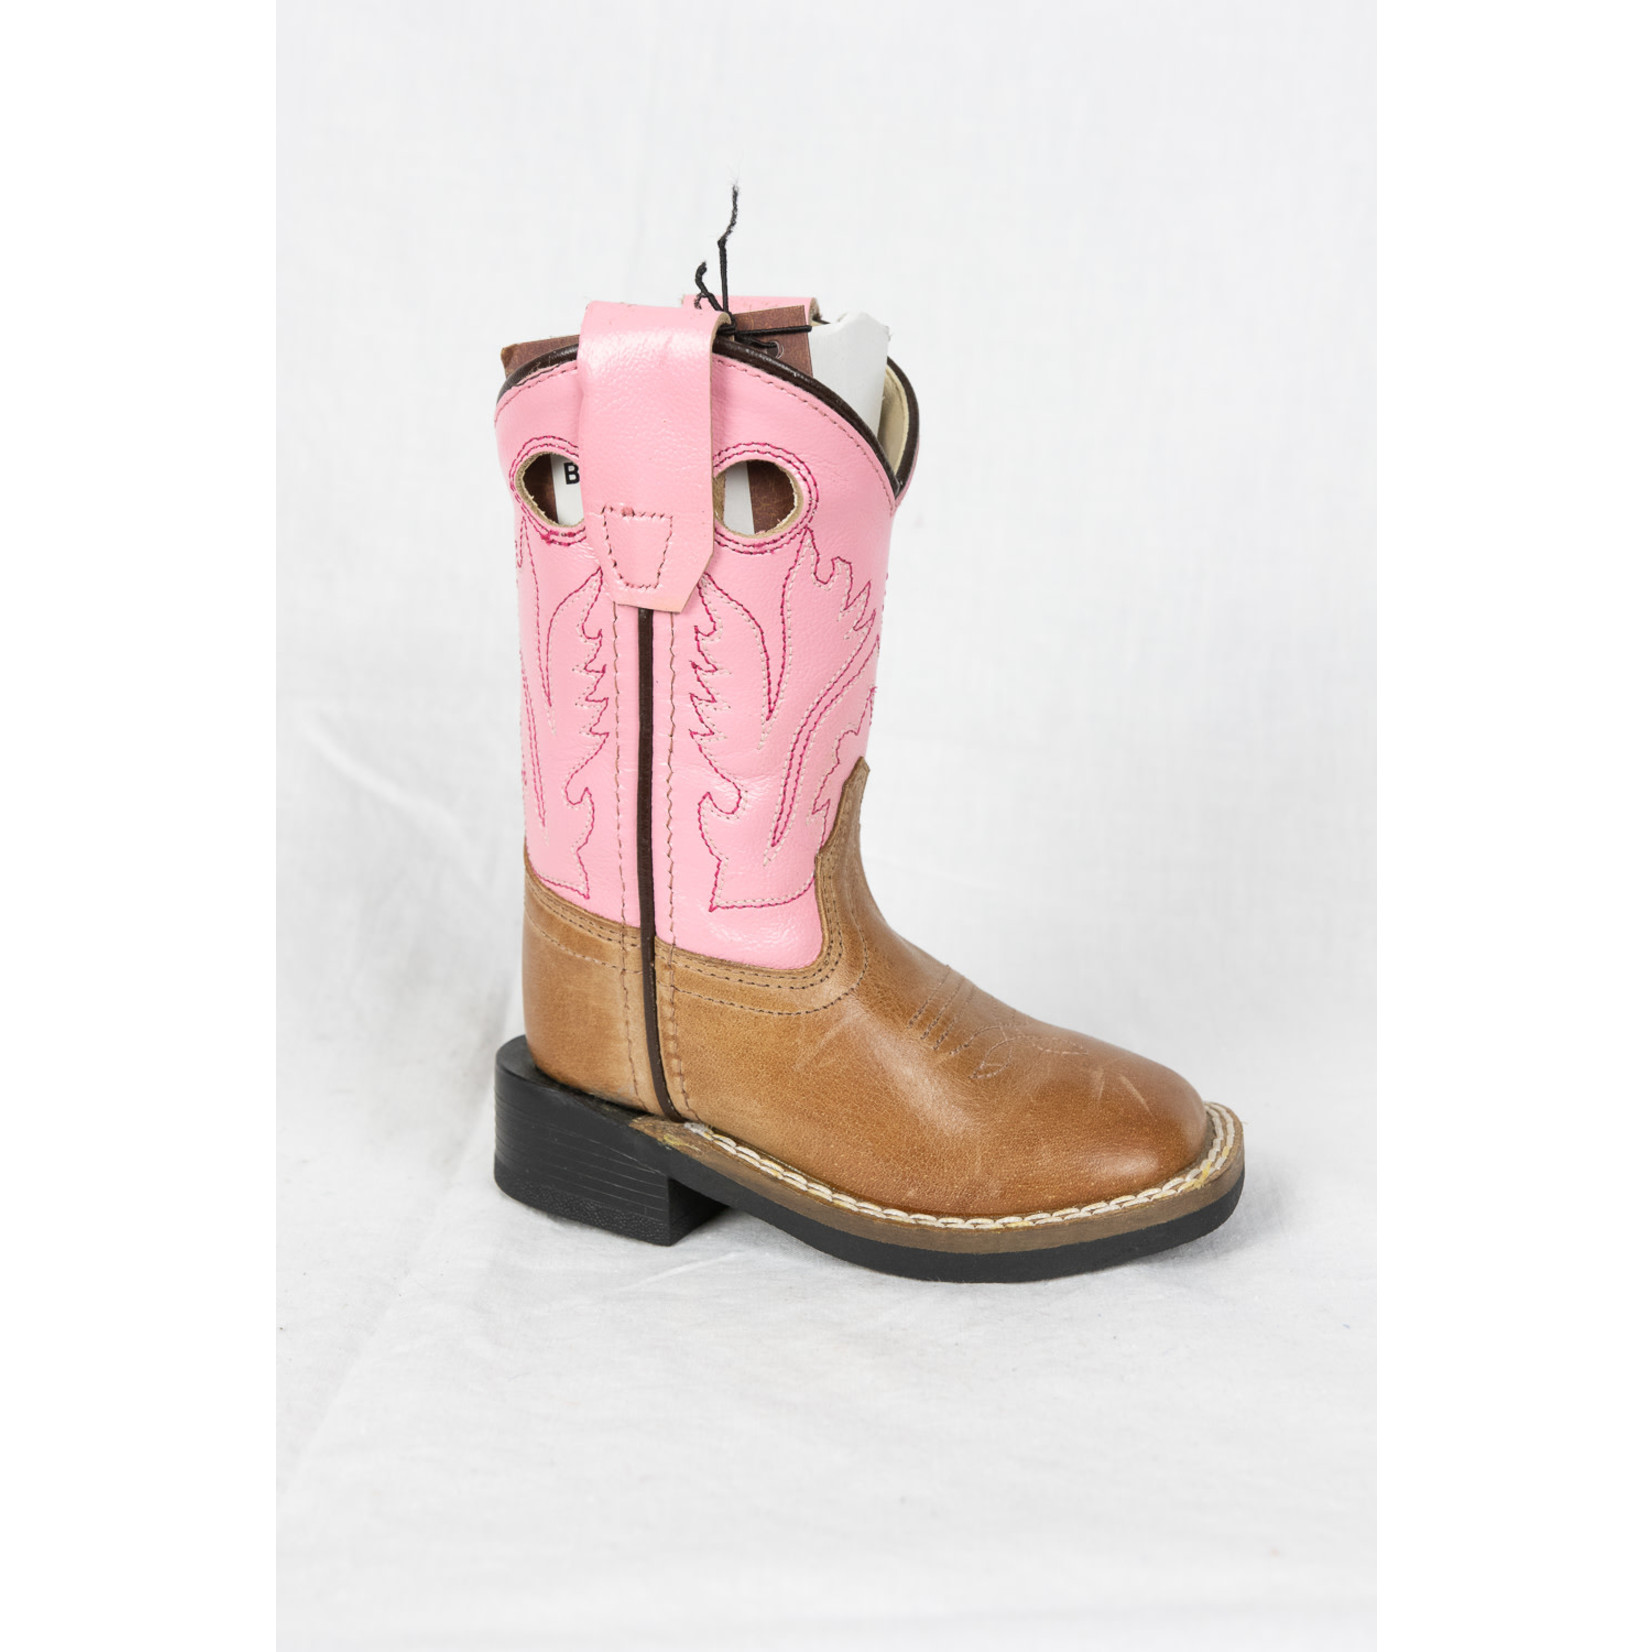 Old west Old West Brown Pink Kids Cowboy Boot CW2539